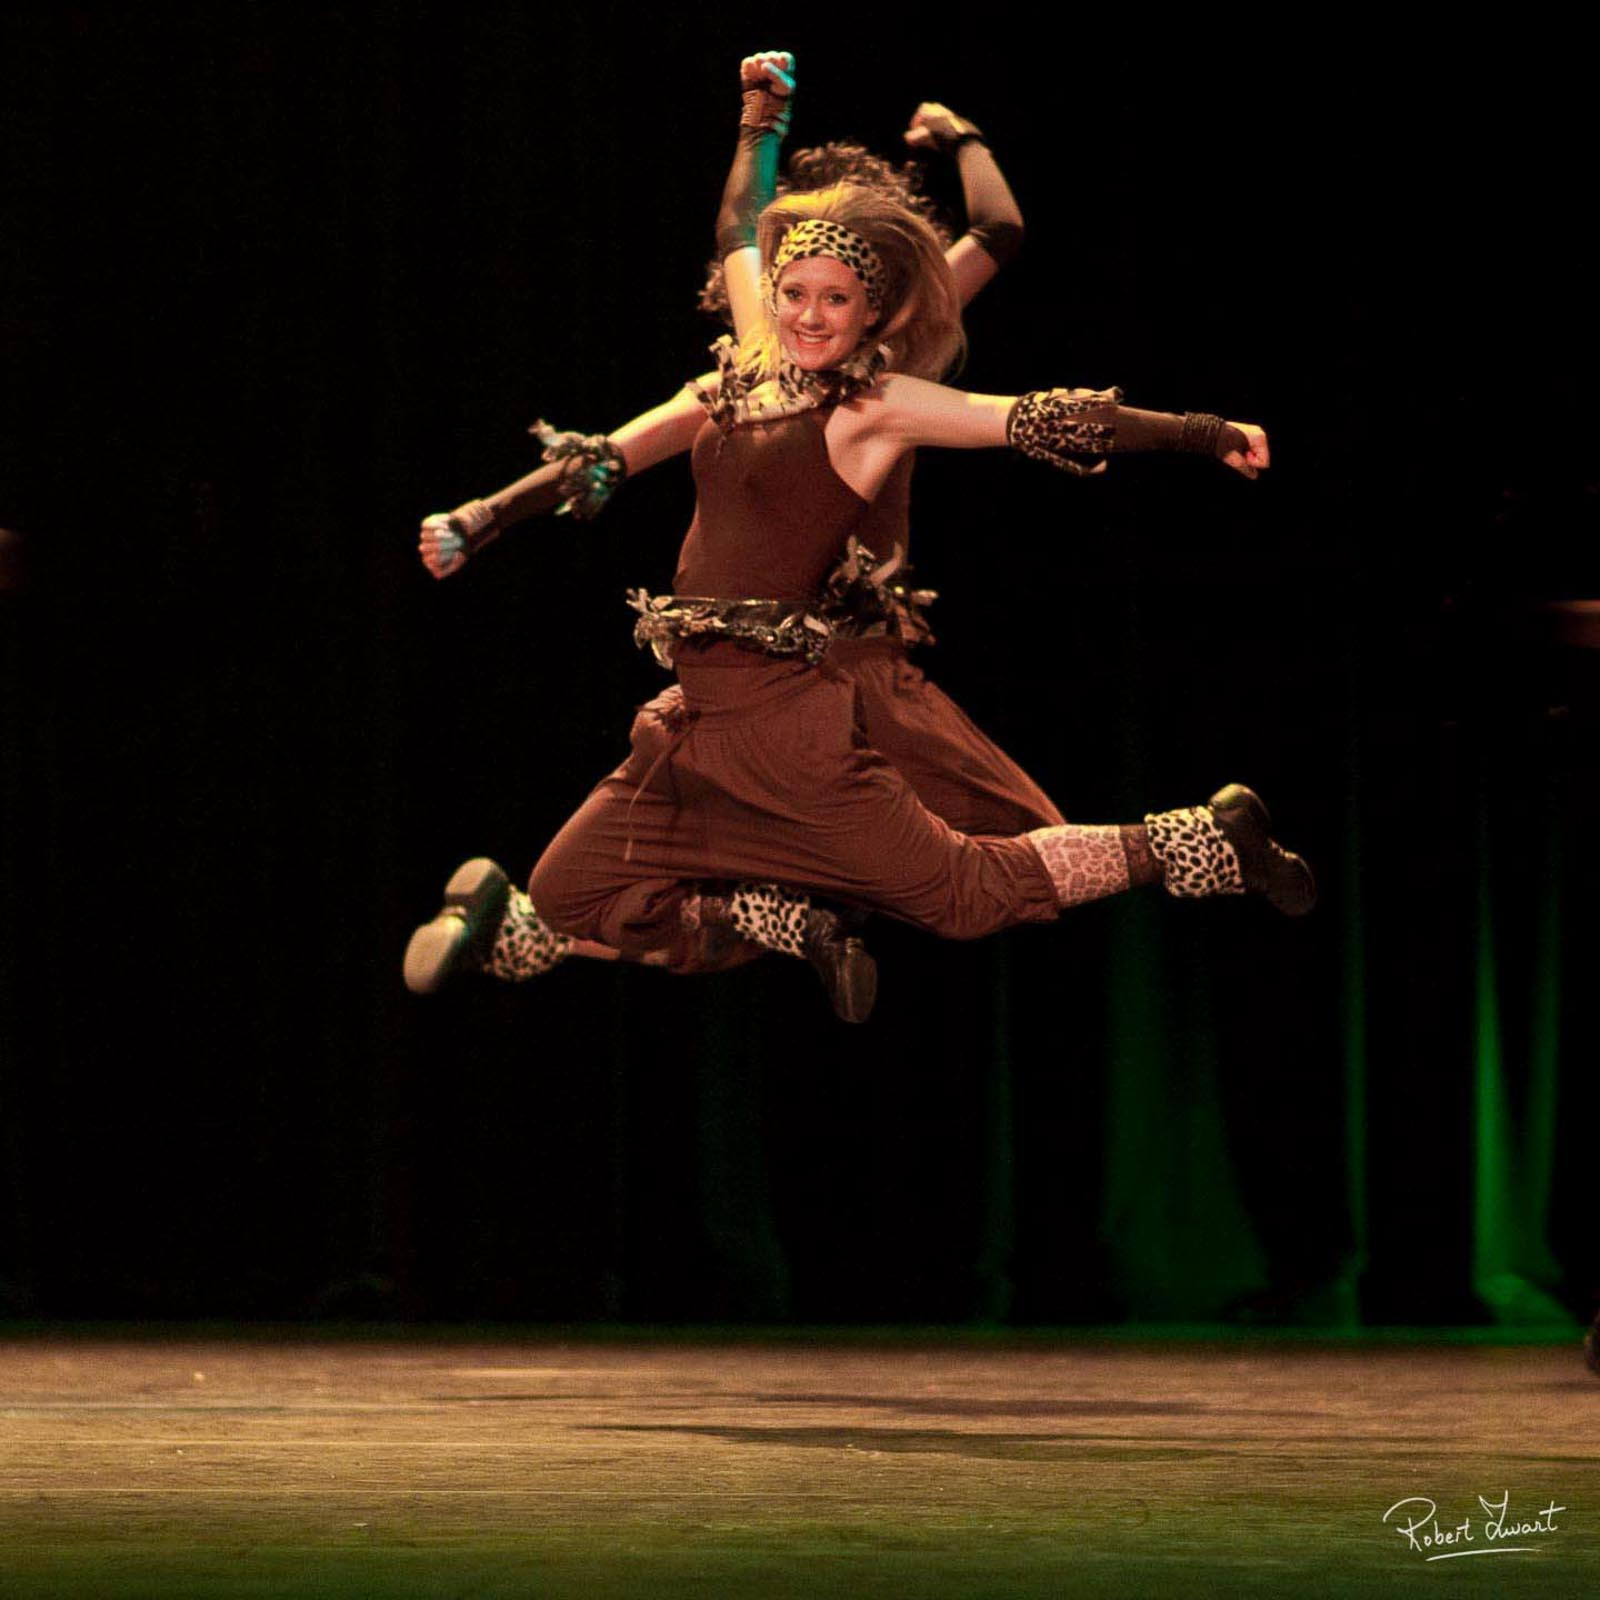 Two female dancers on stage shot during their jump.